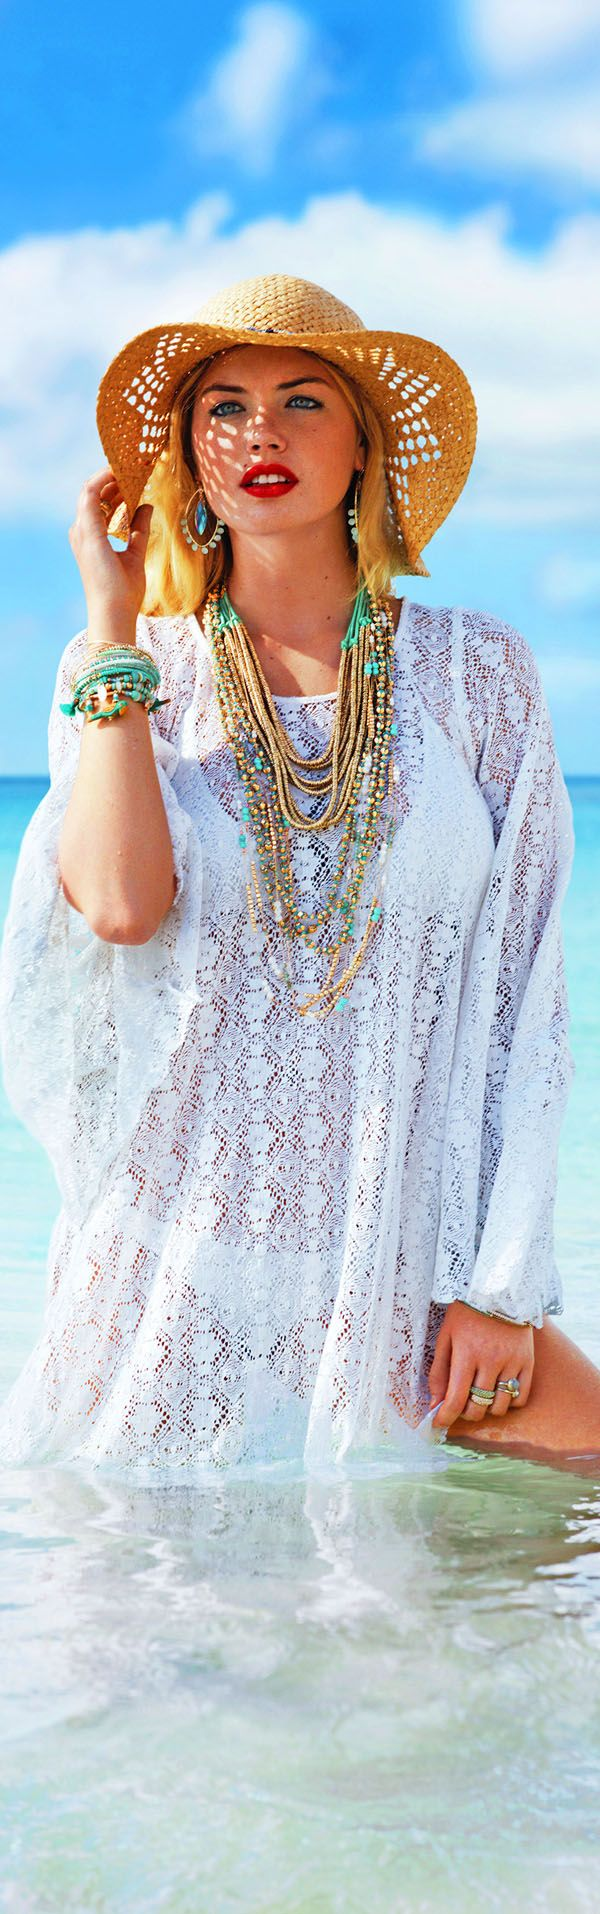 Beach Cover-Ups for Plus Size Women Over 50 at http://boomerinas.com/2013/03/beach-cover-ups-for-women-plus-size-tunics-dresses-caftans-sarongs/